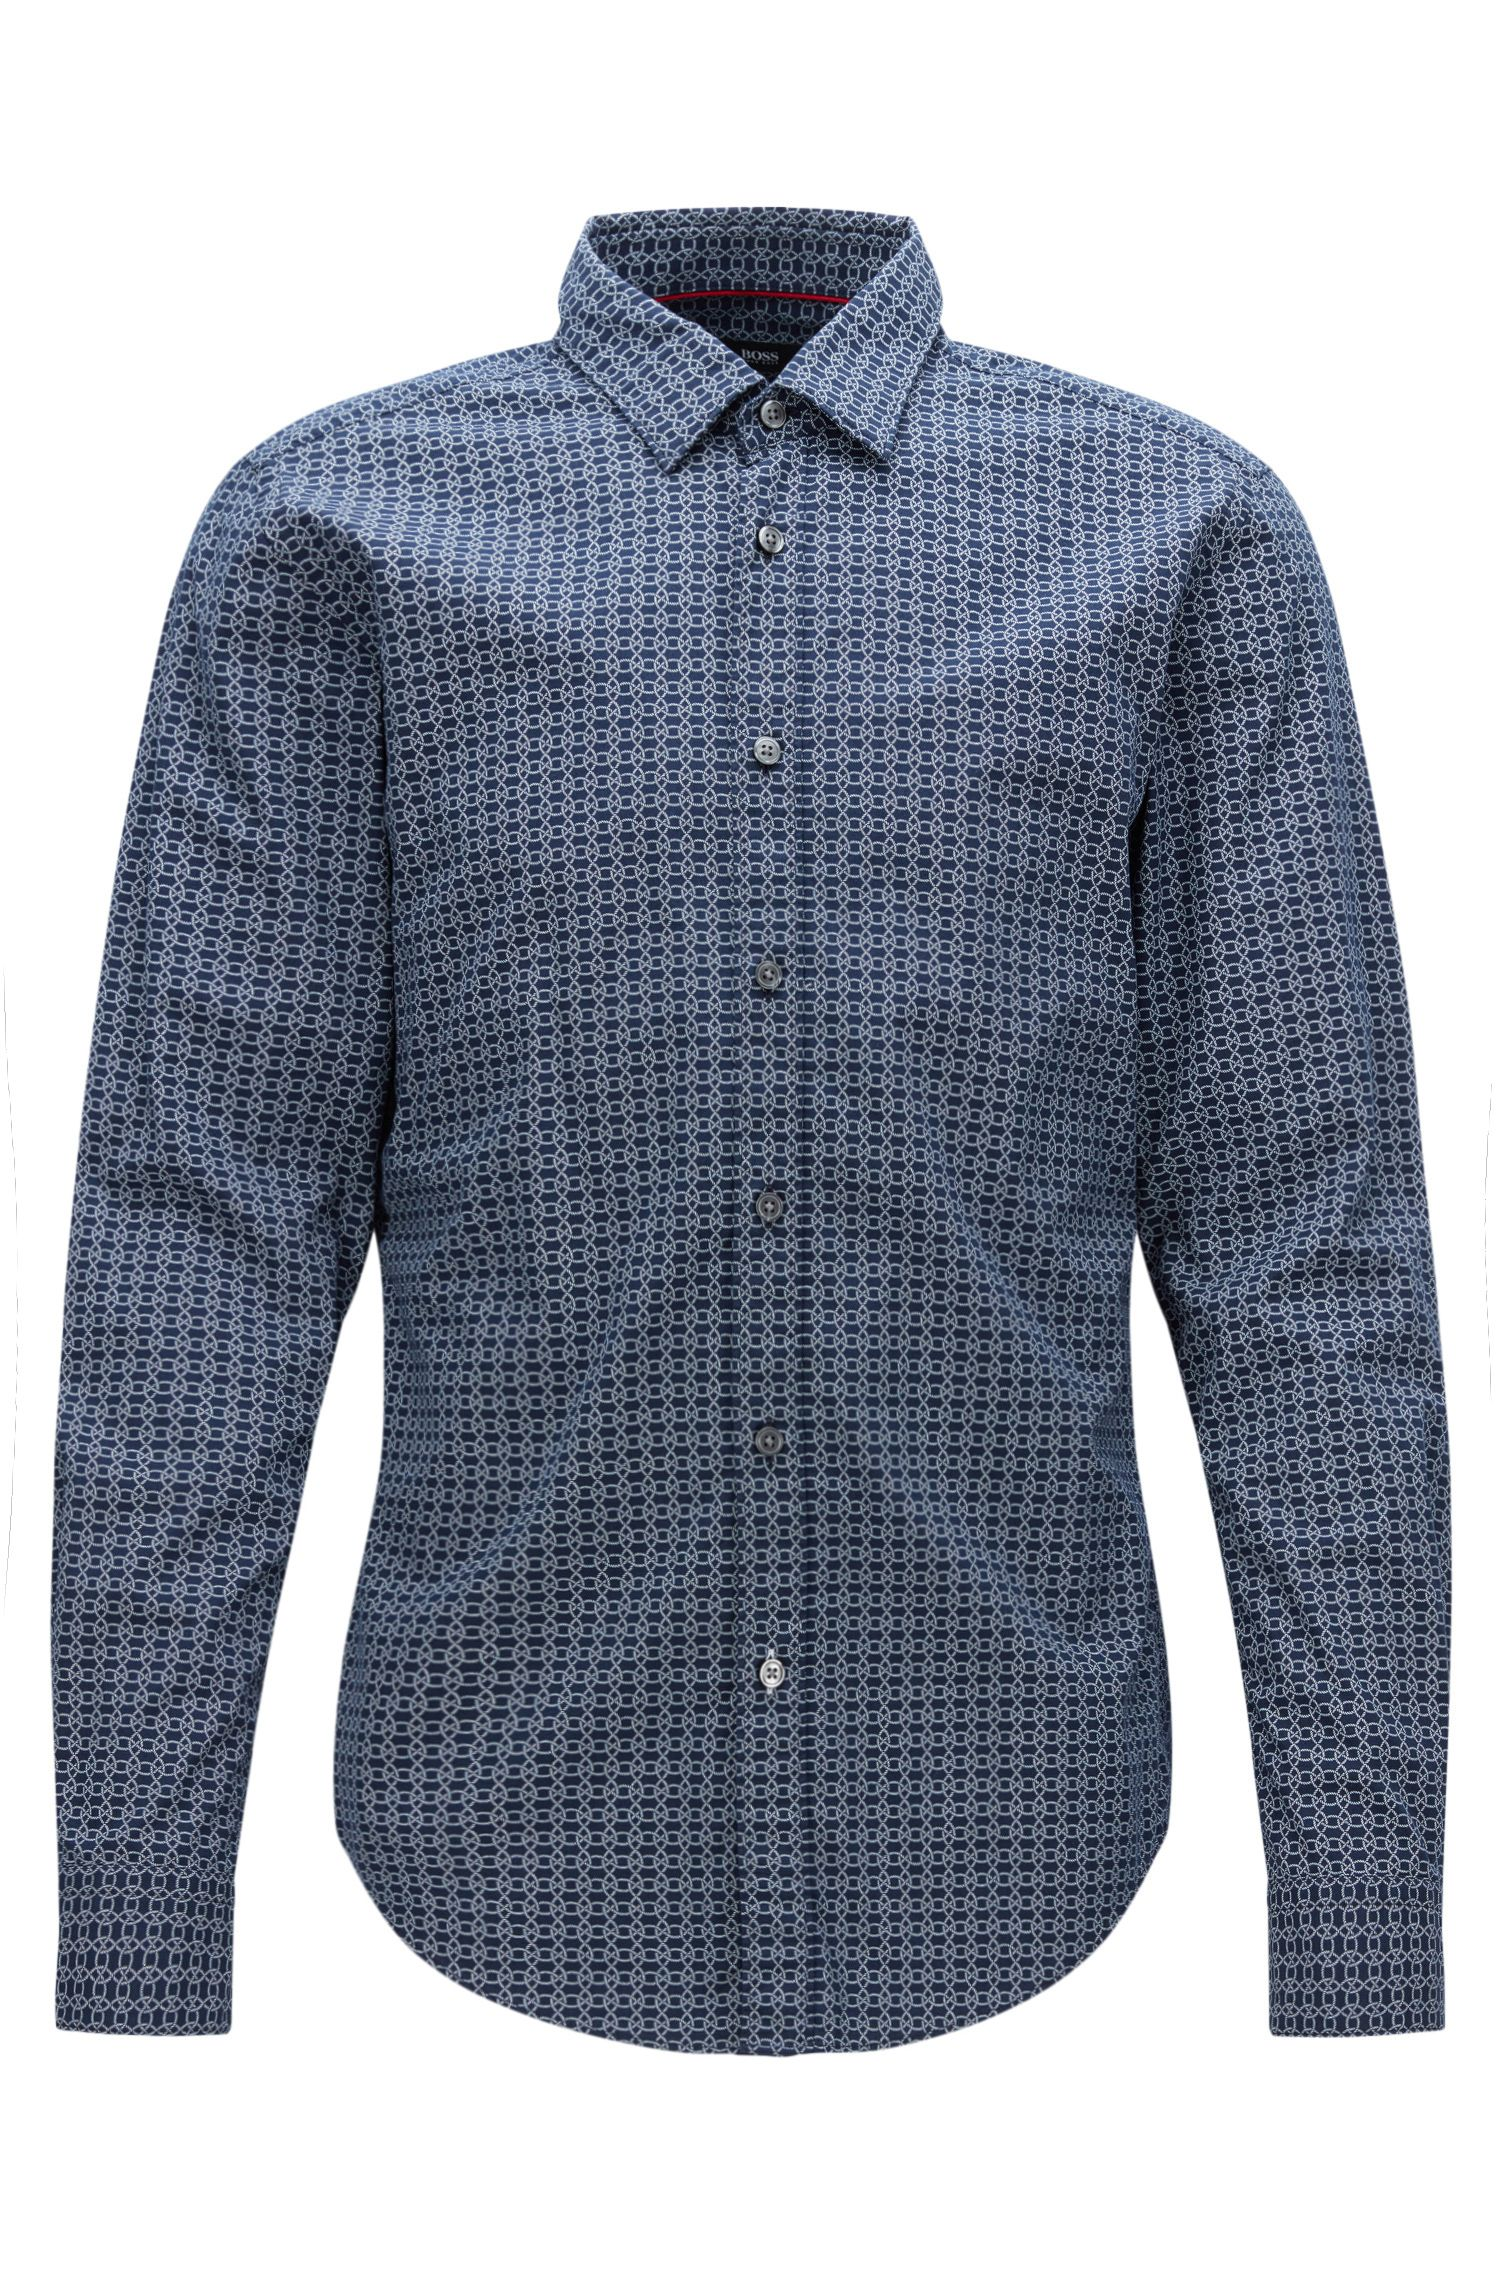 Nautical Cotton Button Down Shirt, Slim Fit | Ronni